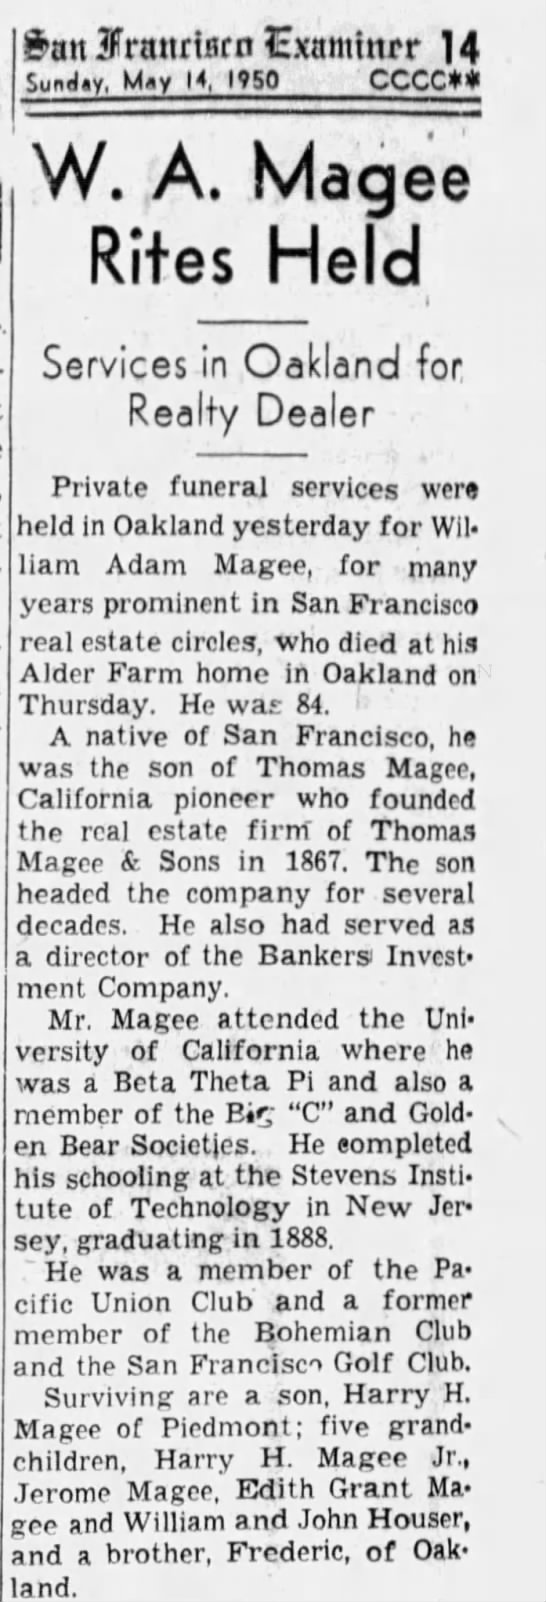 W.A. Magee Rites Held - May 14, 1950 -